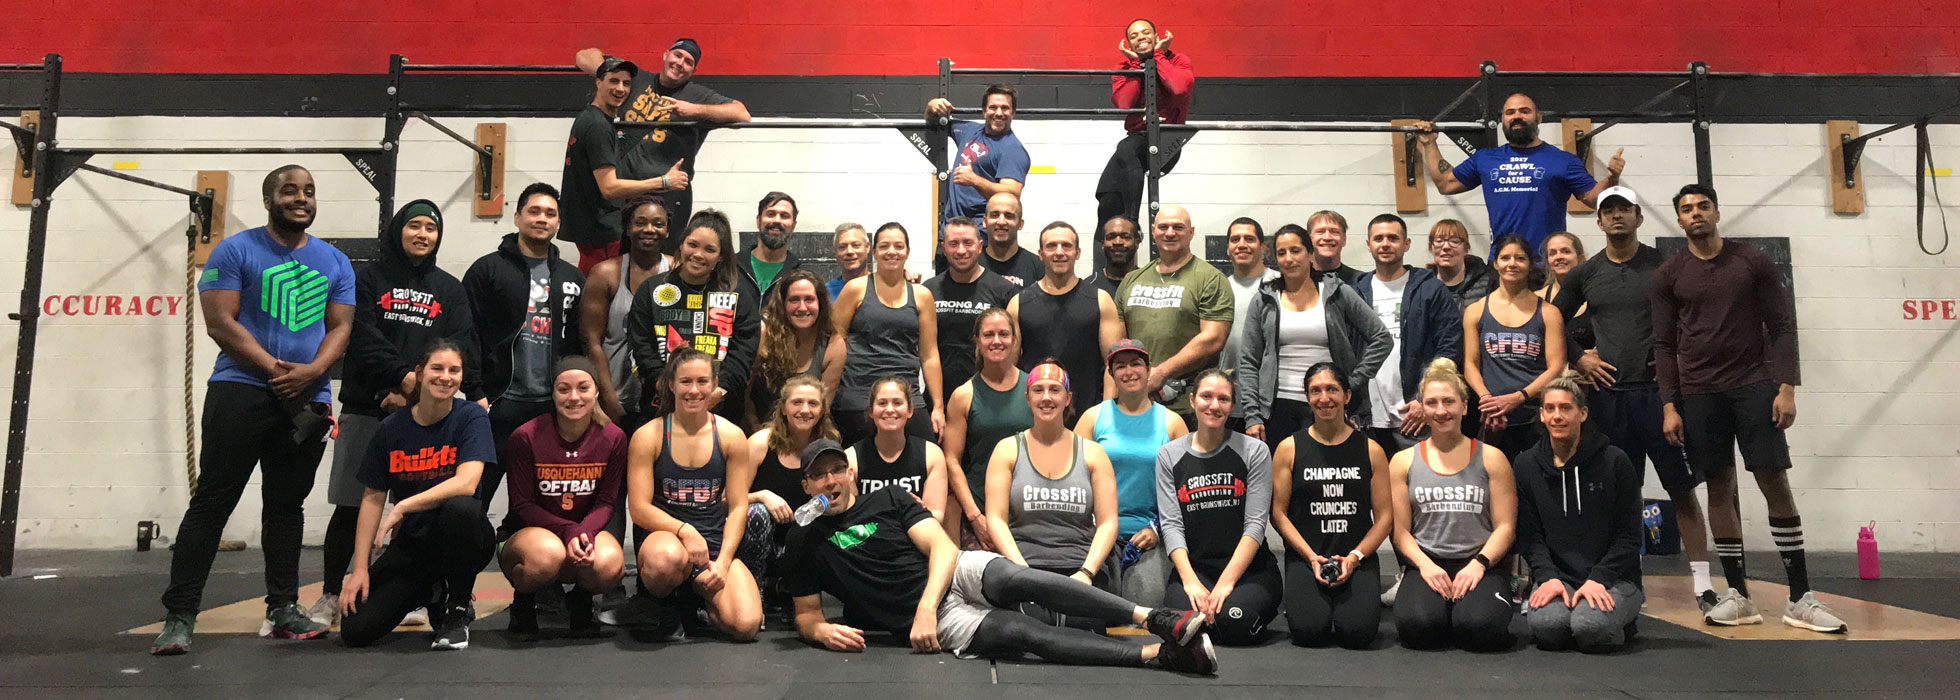 Why Community Fitness Barbending Is Ranked One of the Best Gyms In East Brunswick